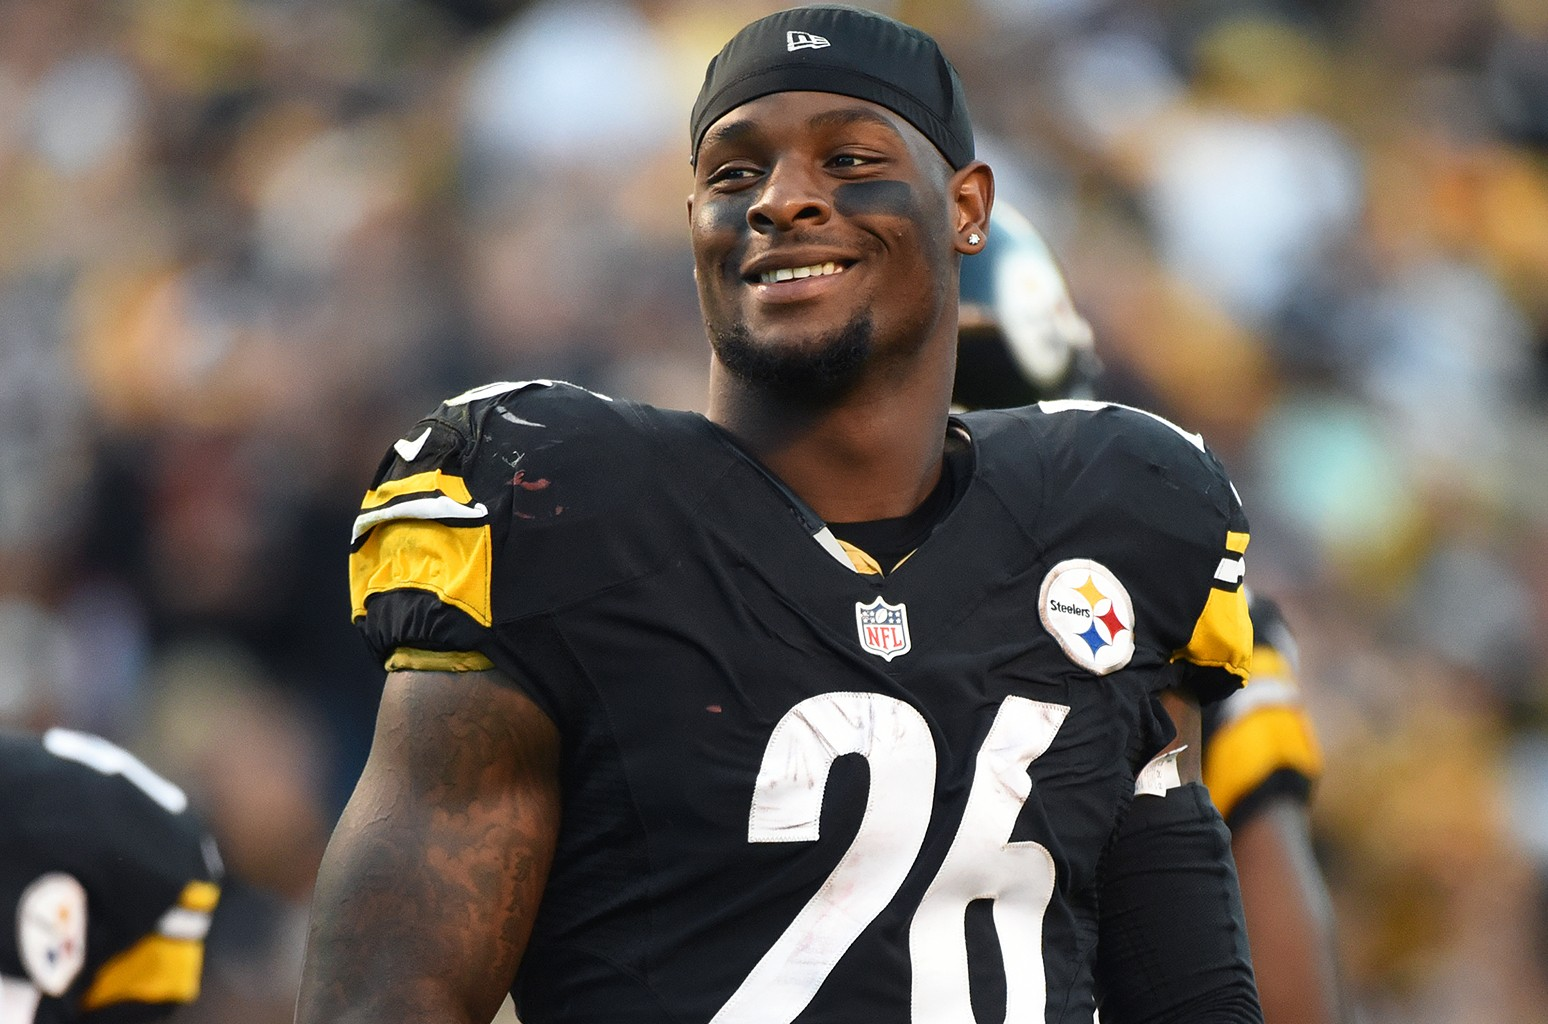 Le'Veon Bell in 2016